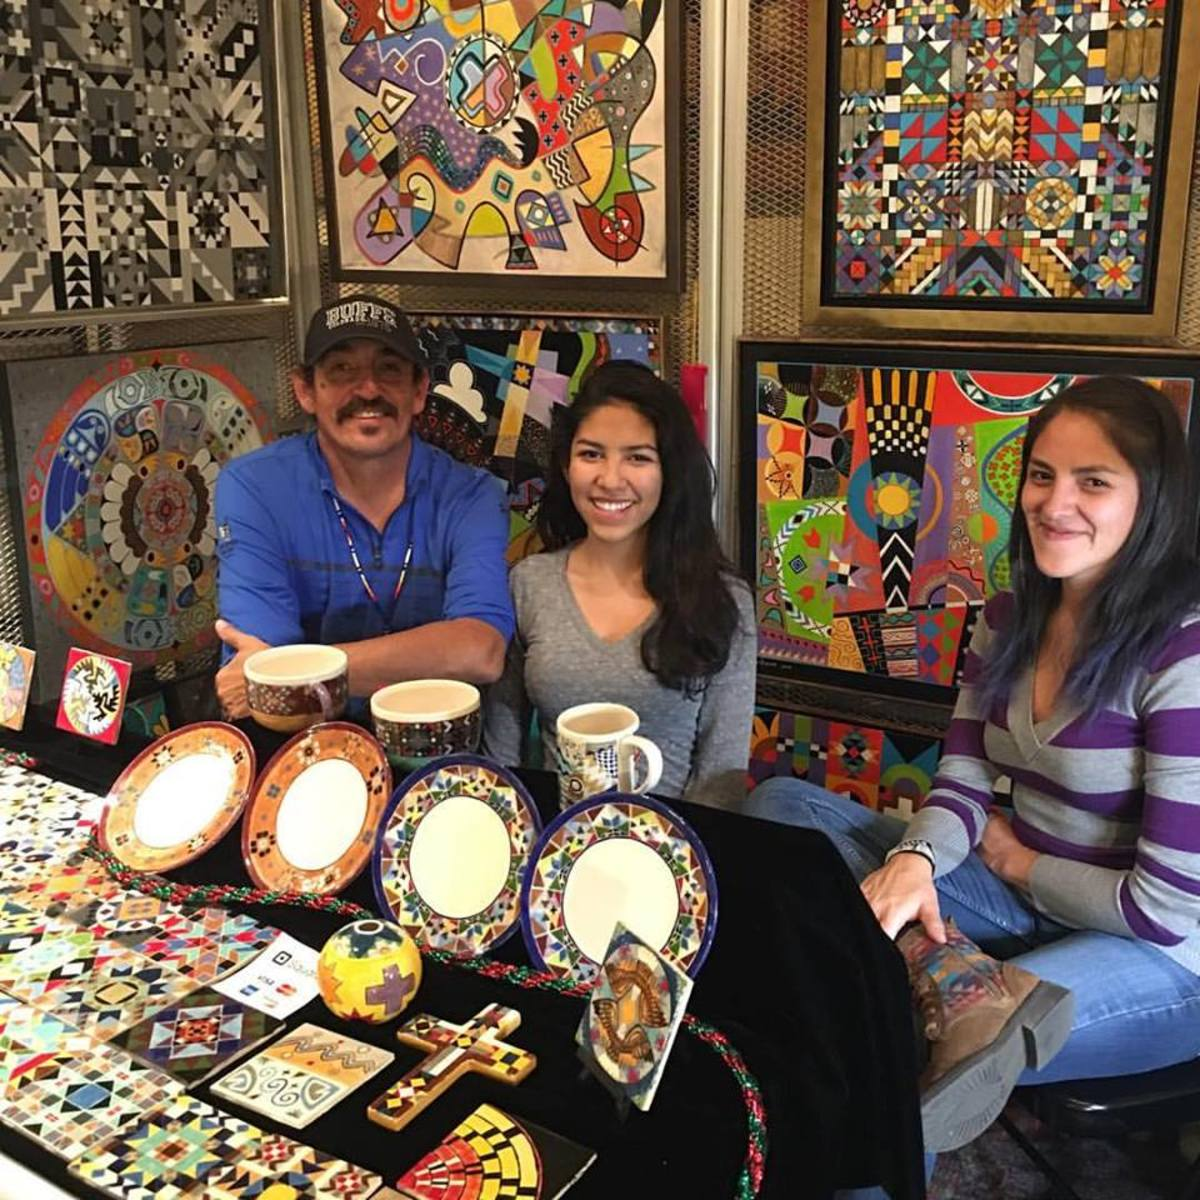 Carson Vicenti, Jicarilla Apache, is seen here with his family at the 2016 SWAIA Santa Fe Indian Market, one of the events mentioned in Santa Fe's cultural map.